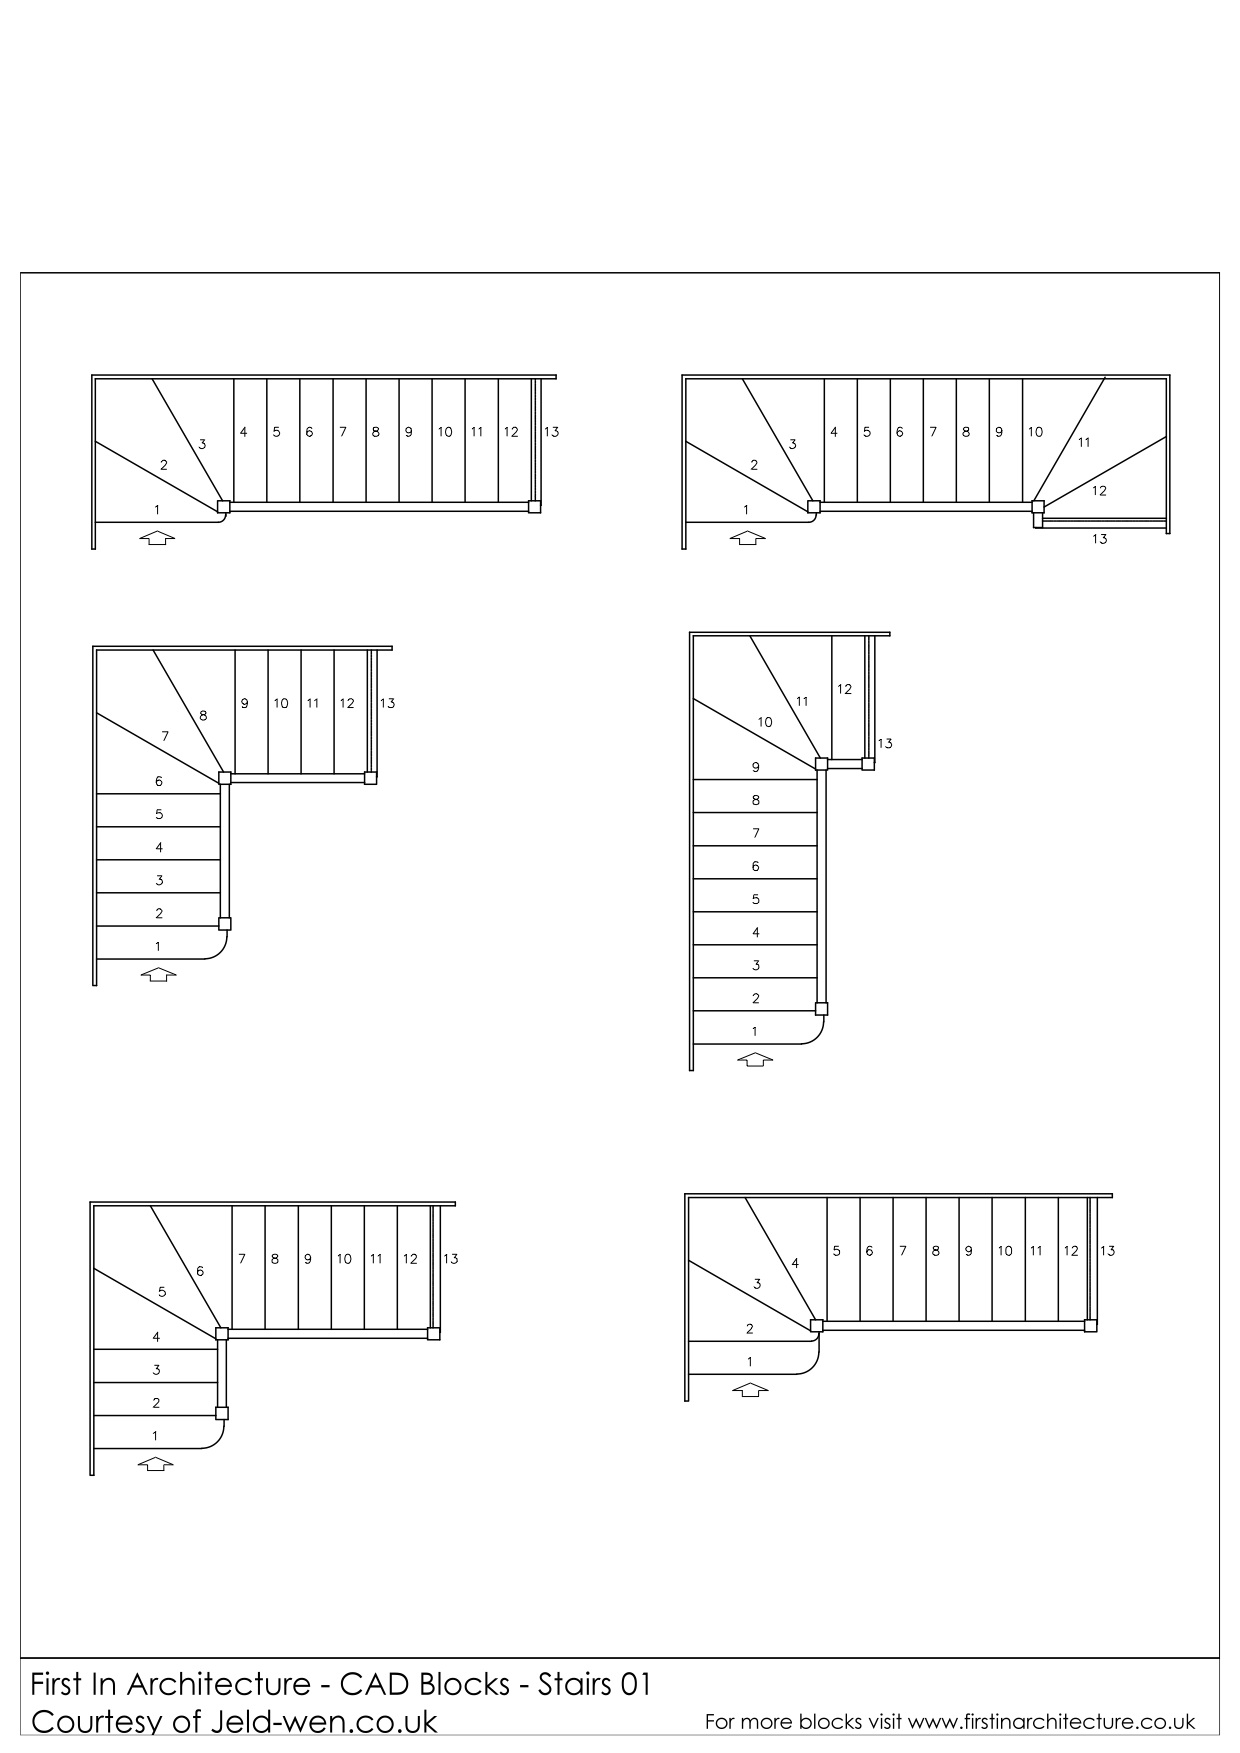 Free cad blocks stairs first in architecture for Online architecture drawing